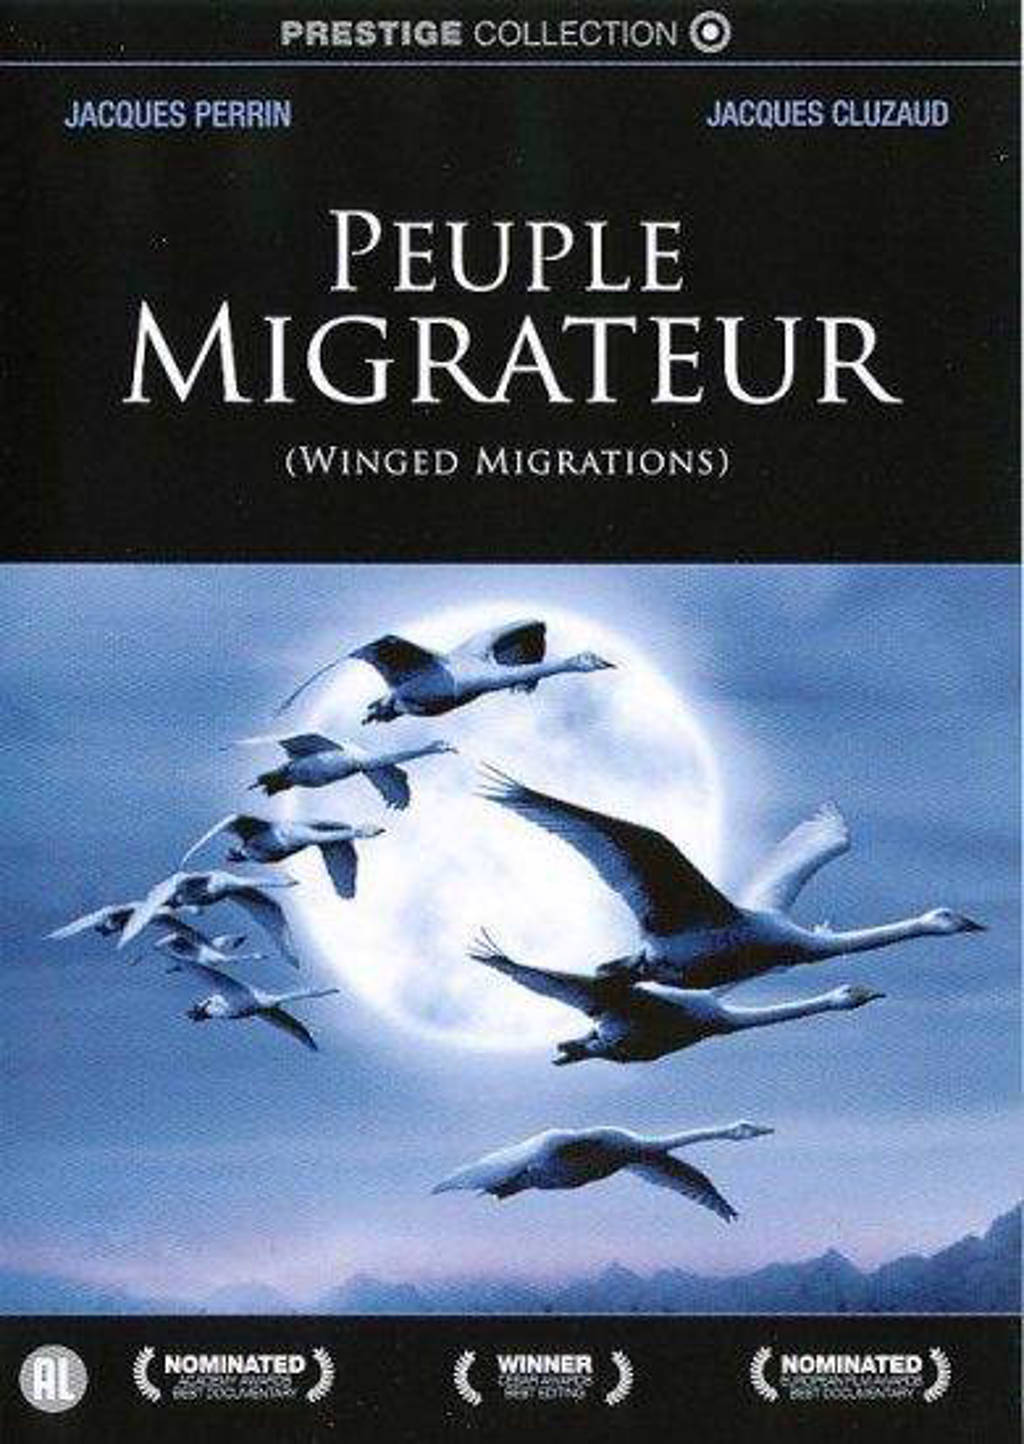 Peuple migrateur (Winged migrations) (DVD)